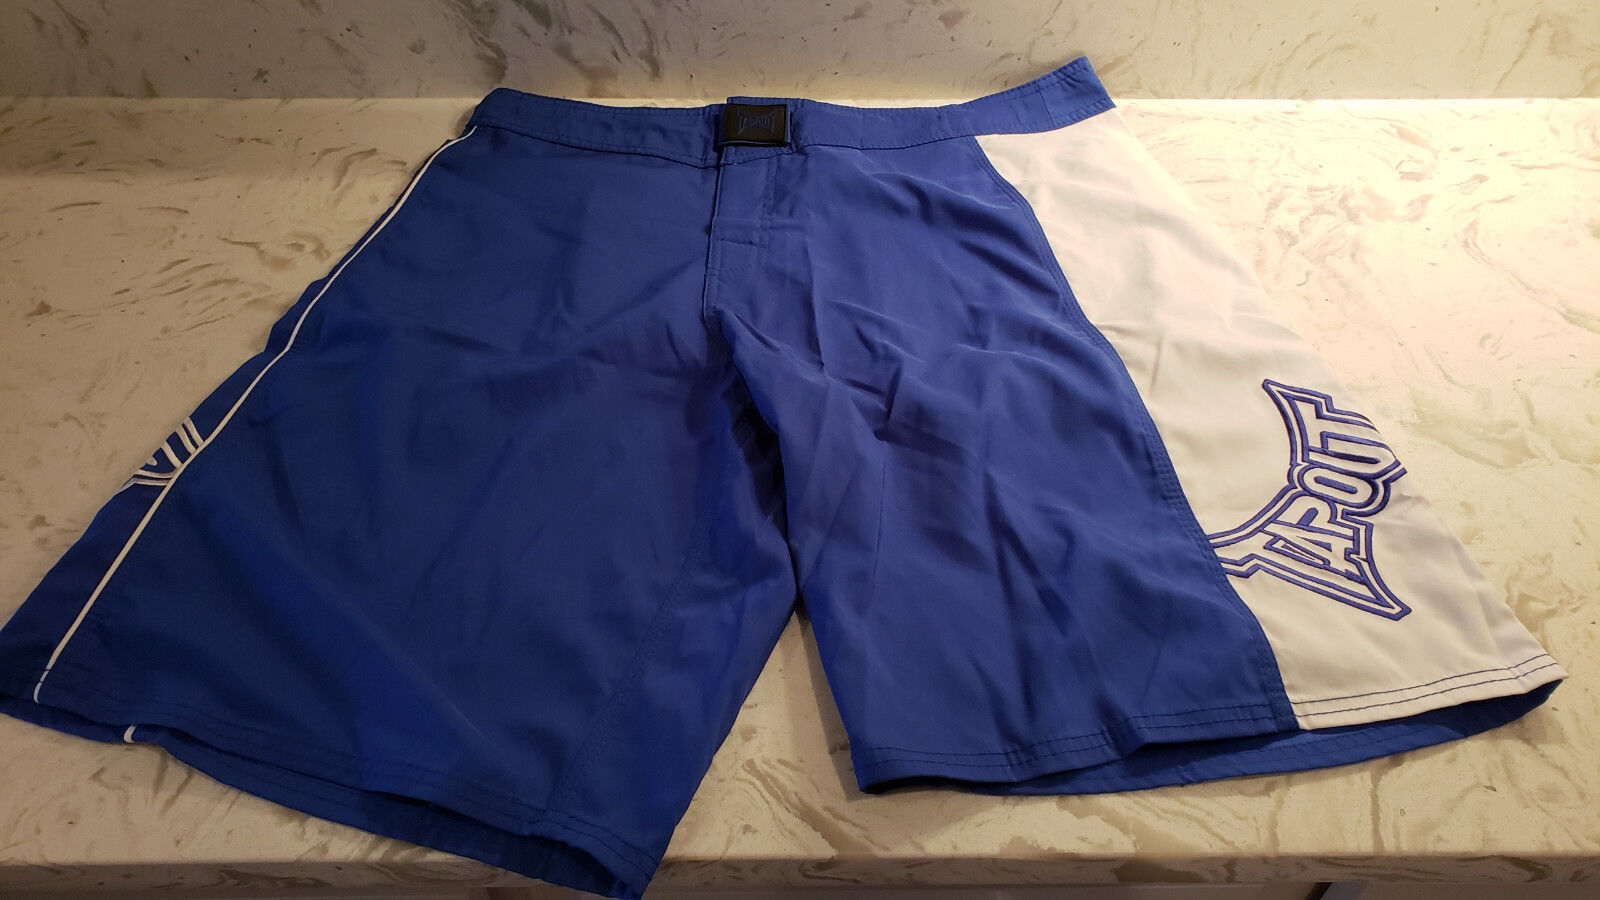 NEW Official  bluee TAPOUT MMA X Roy Board Short Size 36 Ultimate Fighting UFC  free delivery